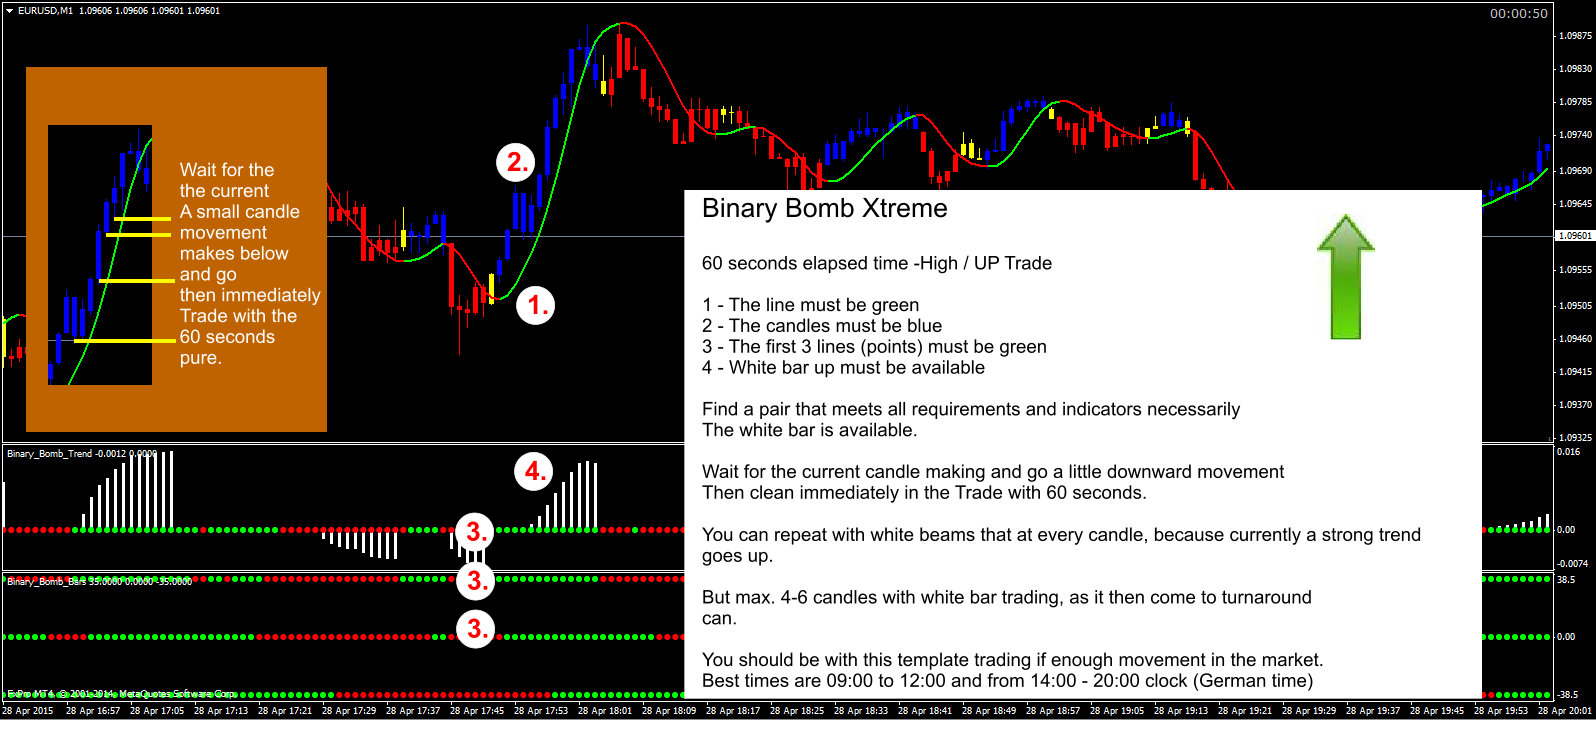 win traders with binary options system